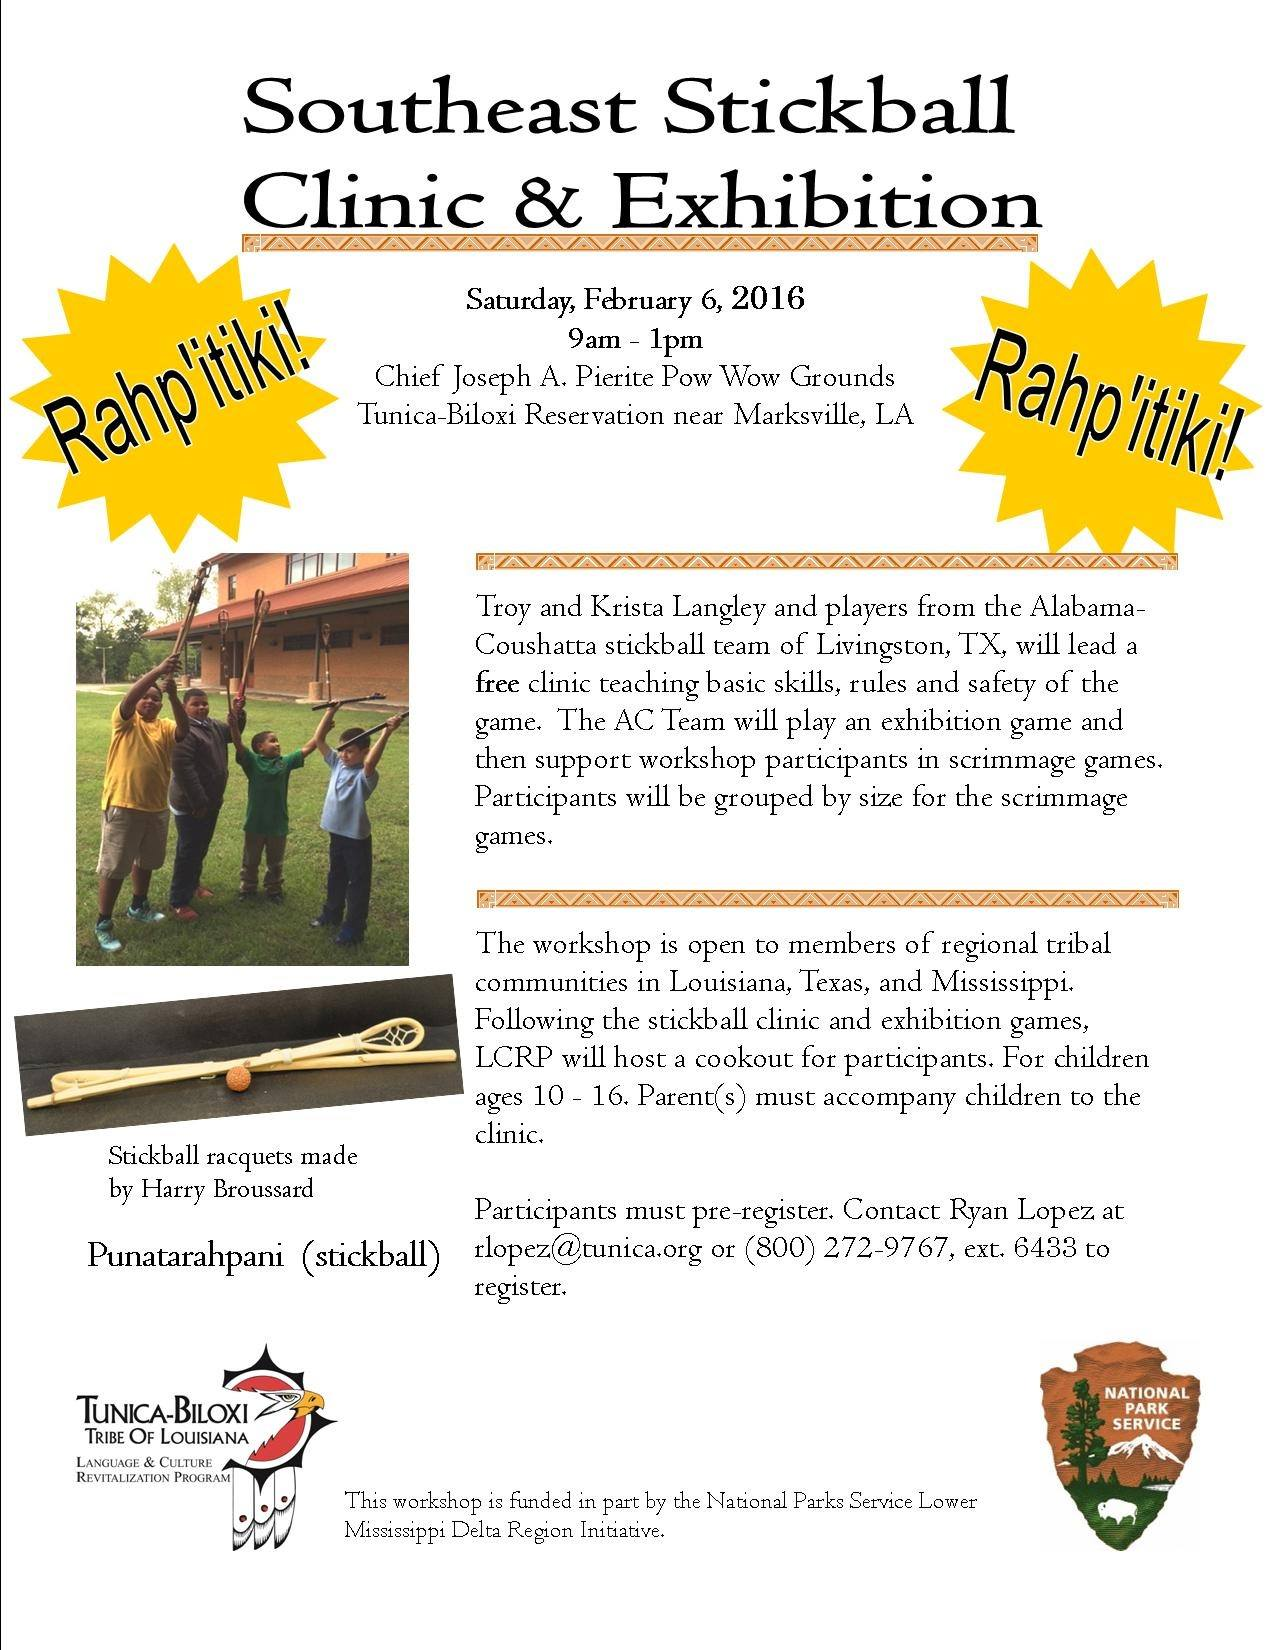 Tunica-Biloxi Tribe invites youth to stickball clinic and exhibition